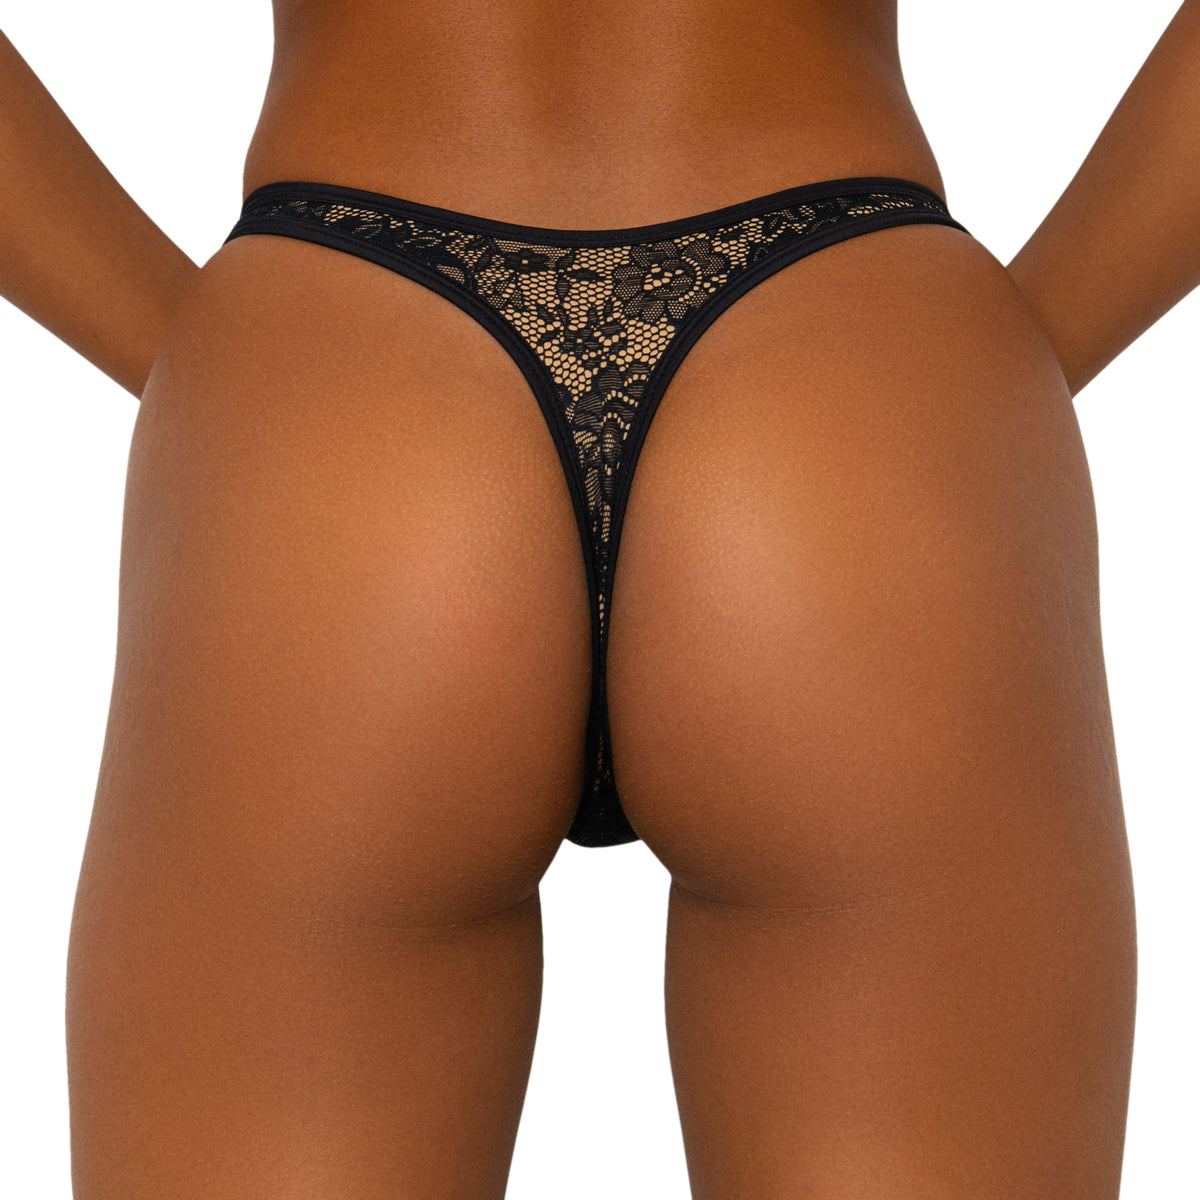 Goi Bottoms Black Lace